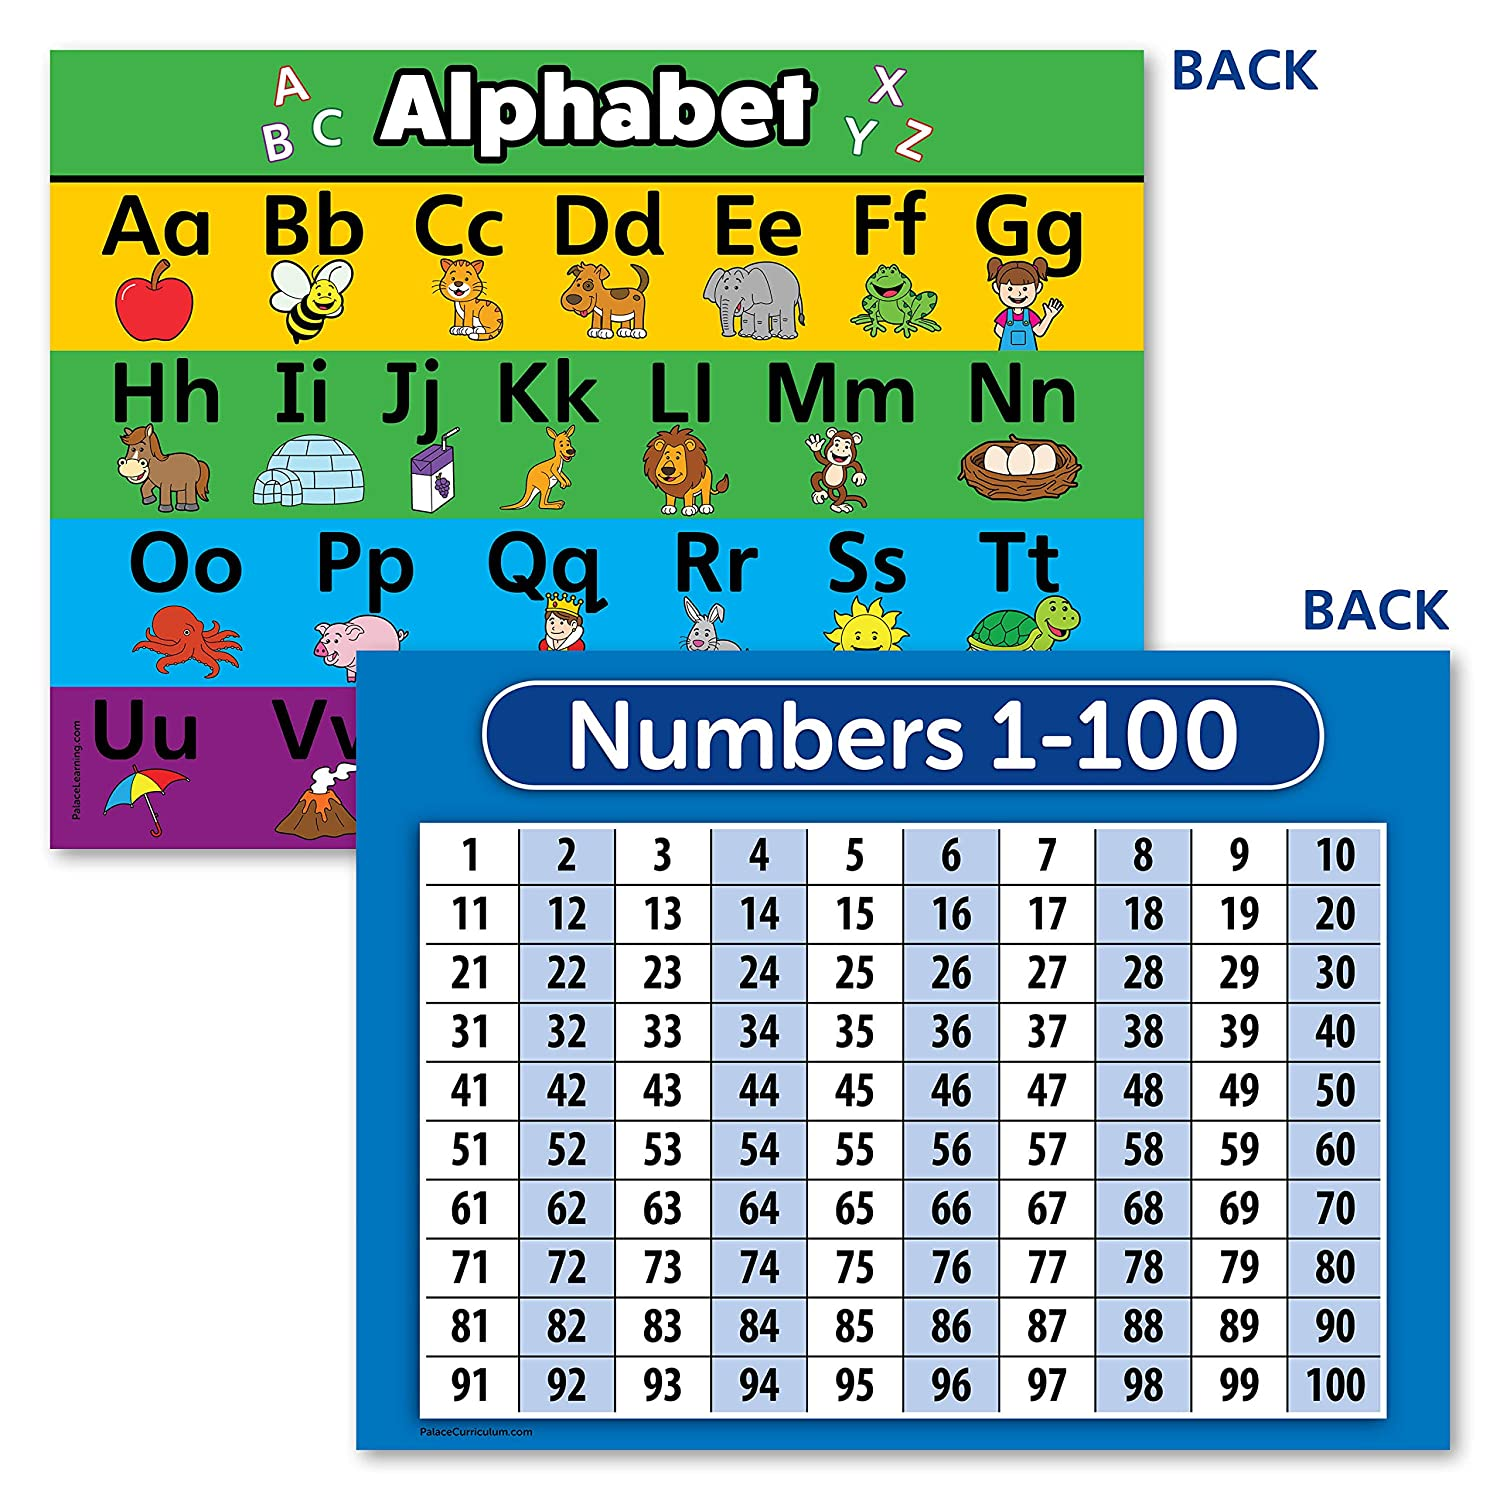 52276cffda88e Amazon.com  LAMINATED ABC Alphabet   Numbers 1-100 Poster Chart Set (18 x  24)  Home   Kitchen